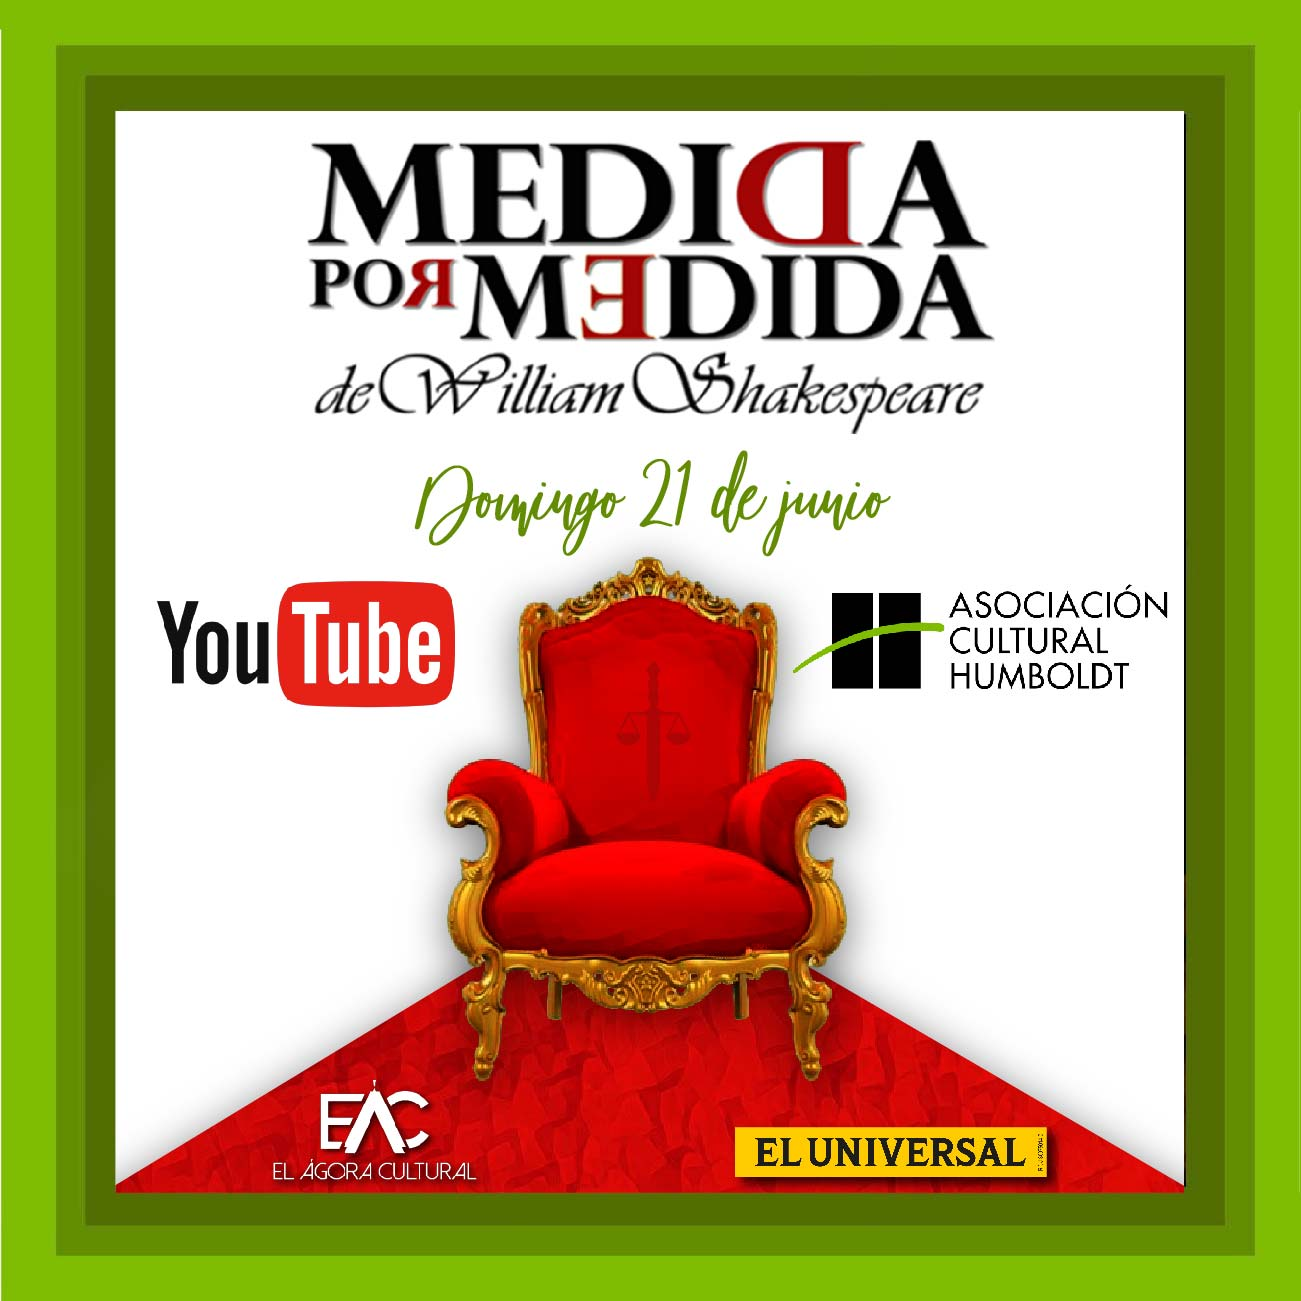 "Continúa la programación de YouTube con la obra germánica de William Shakespeare ""Medida por Medida"""